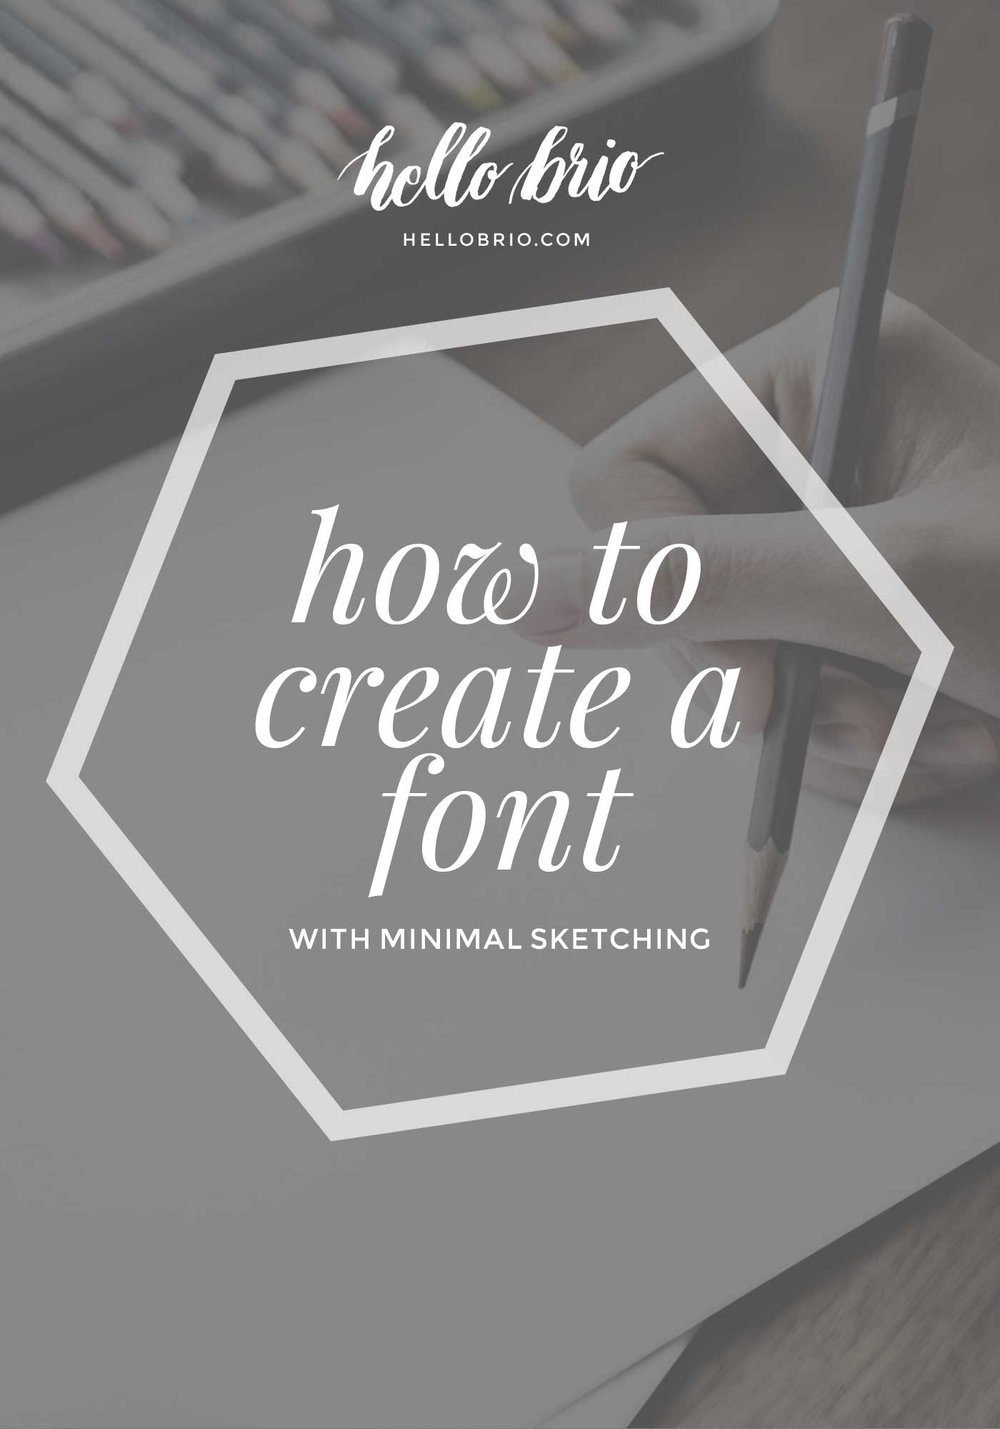 How to create a font with minimal sketching - hellobrio.com